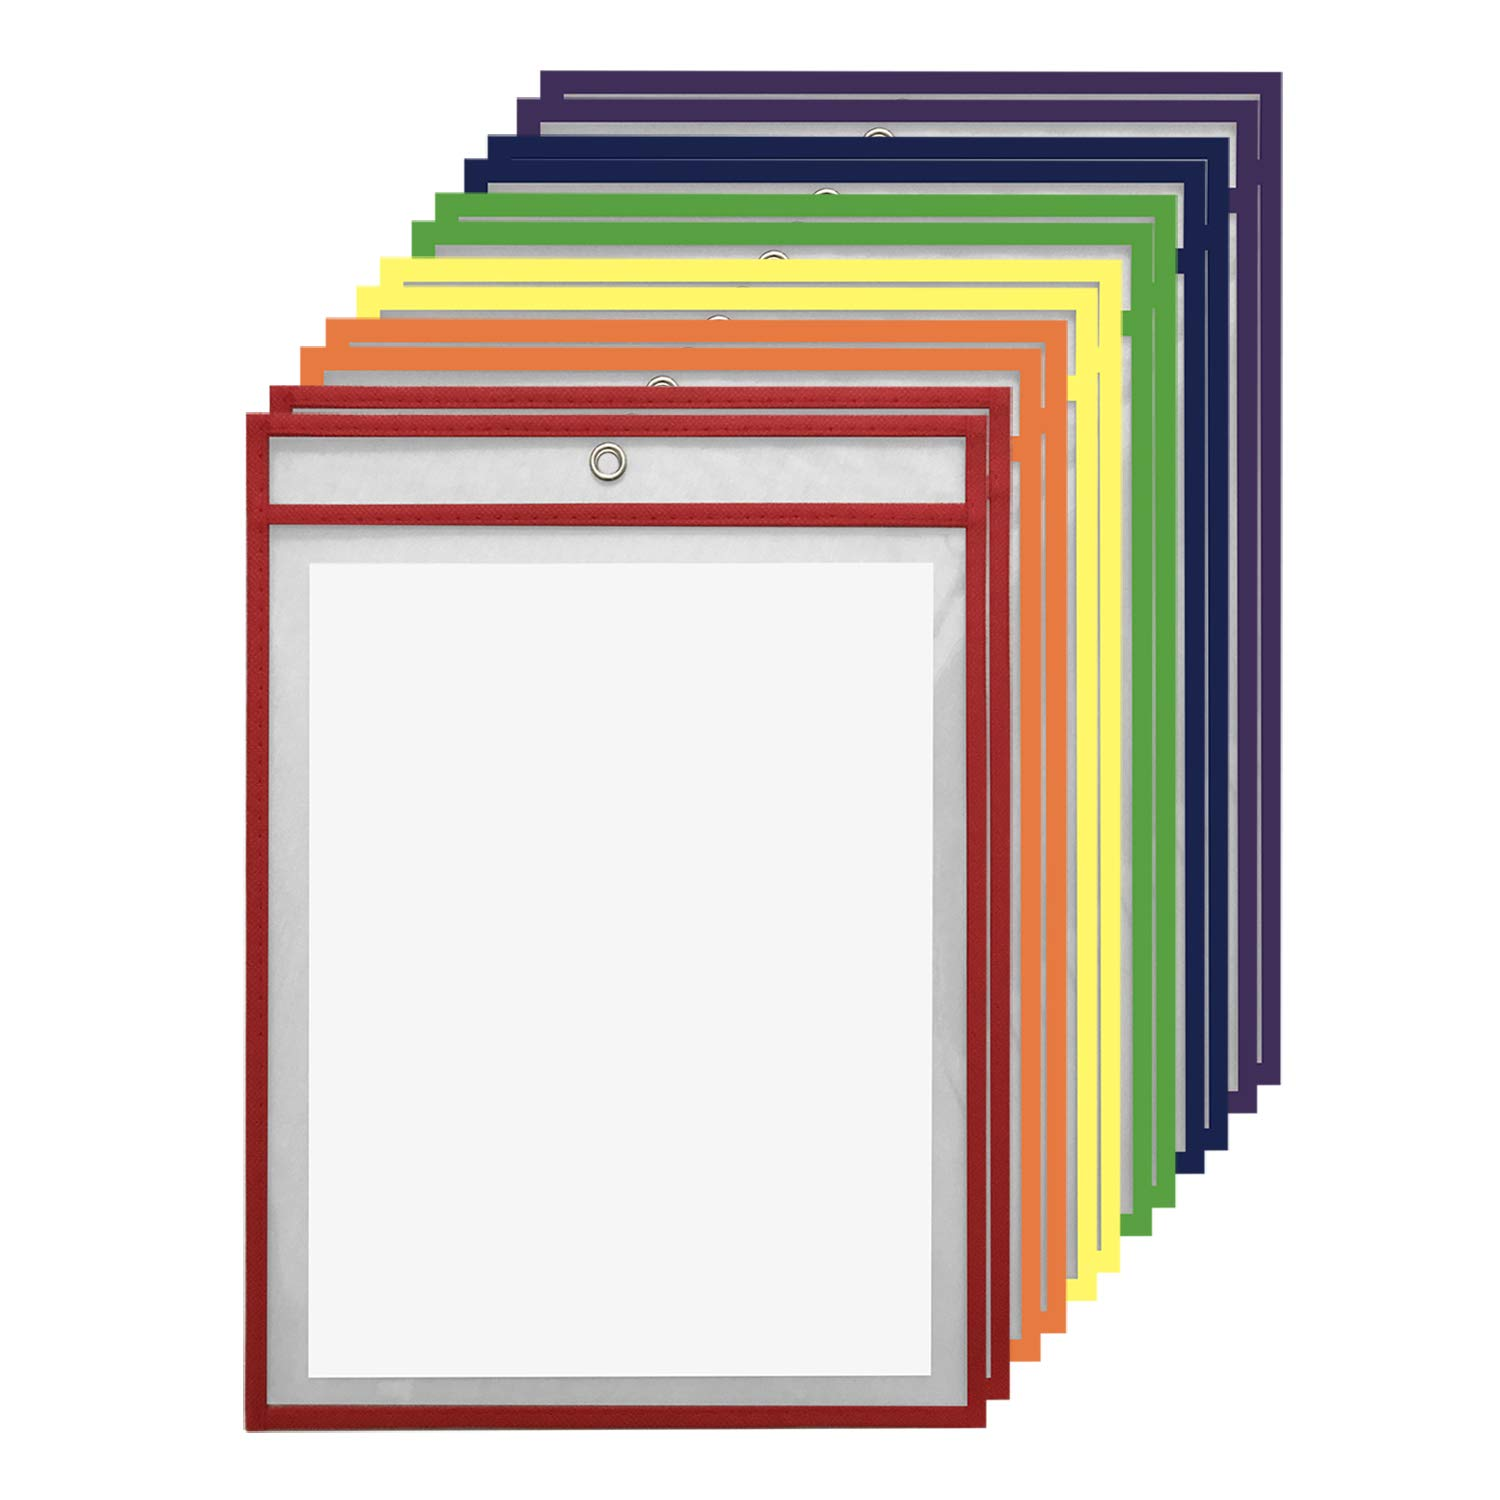 """12 Pack Dry Erase Pockets – Assorted Colors – by Essex Wares – for Teacher Lessons in a Classroom or for Use at Your Home or Office – Fits Standard 8.5"""" X 11"""" Paper"""